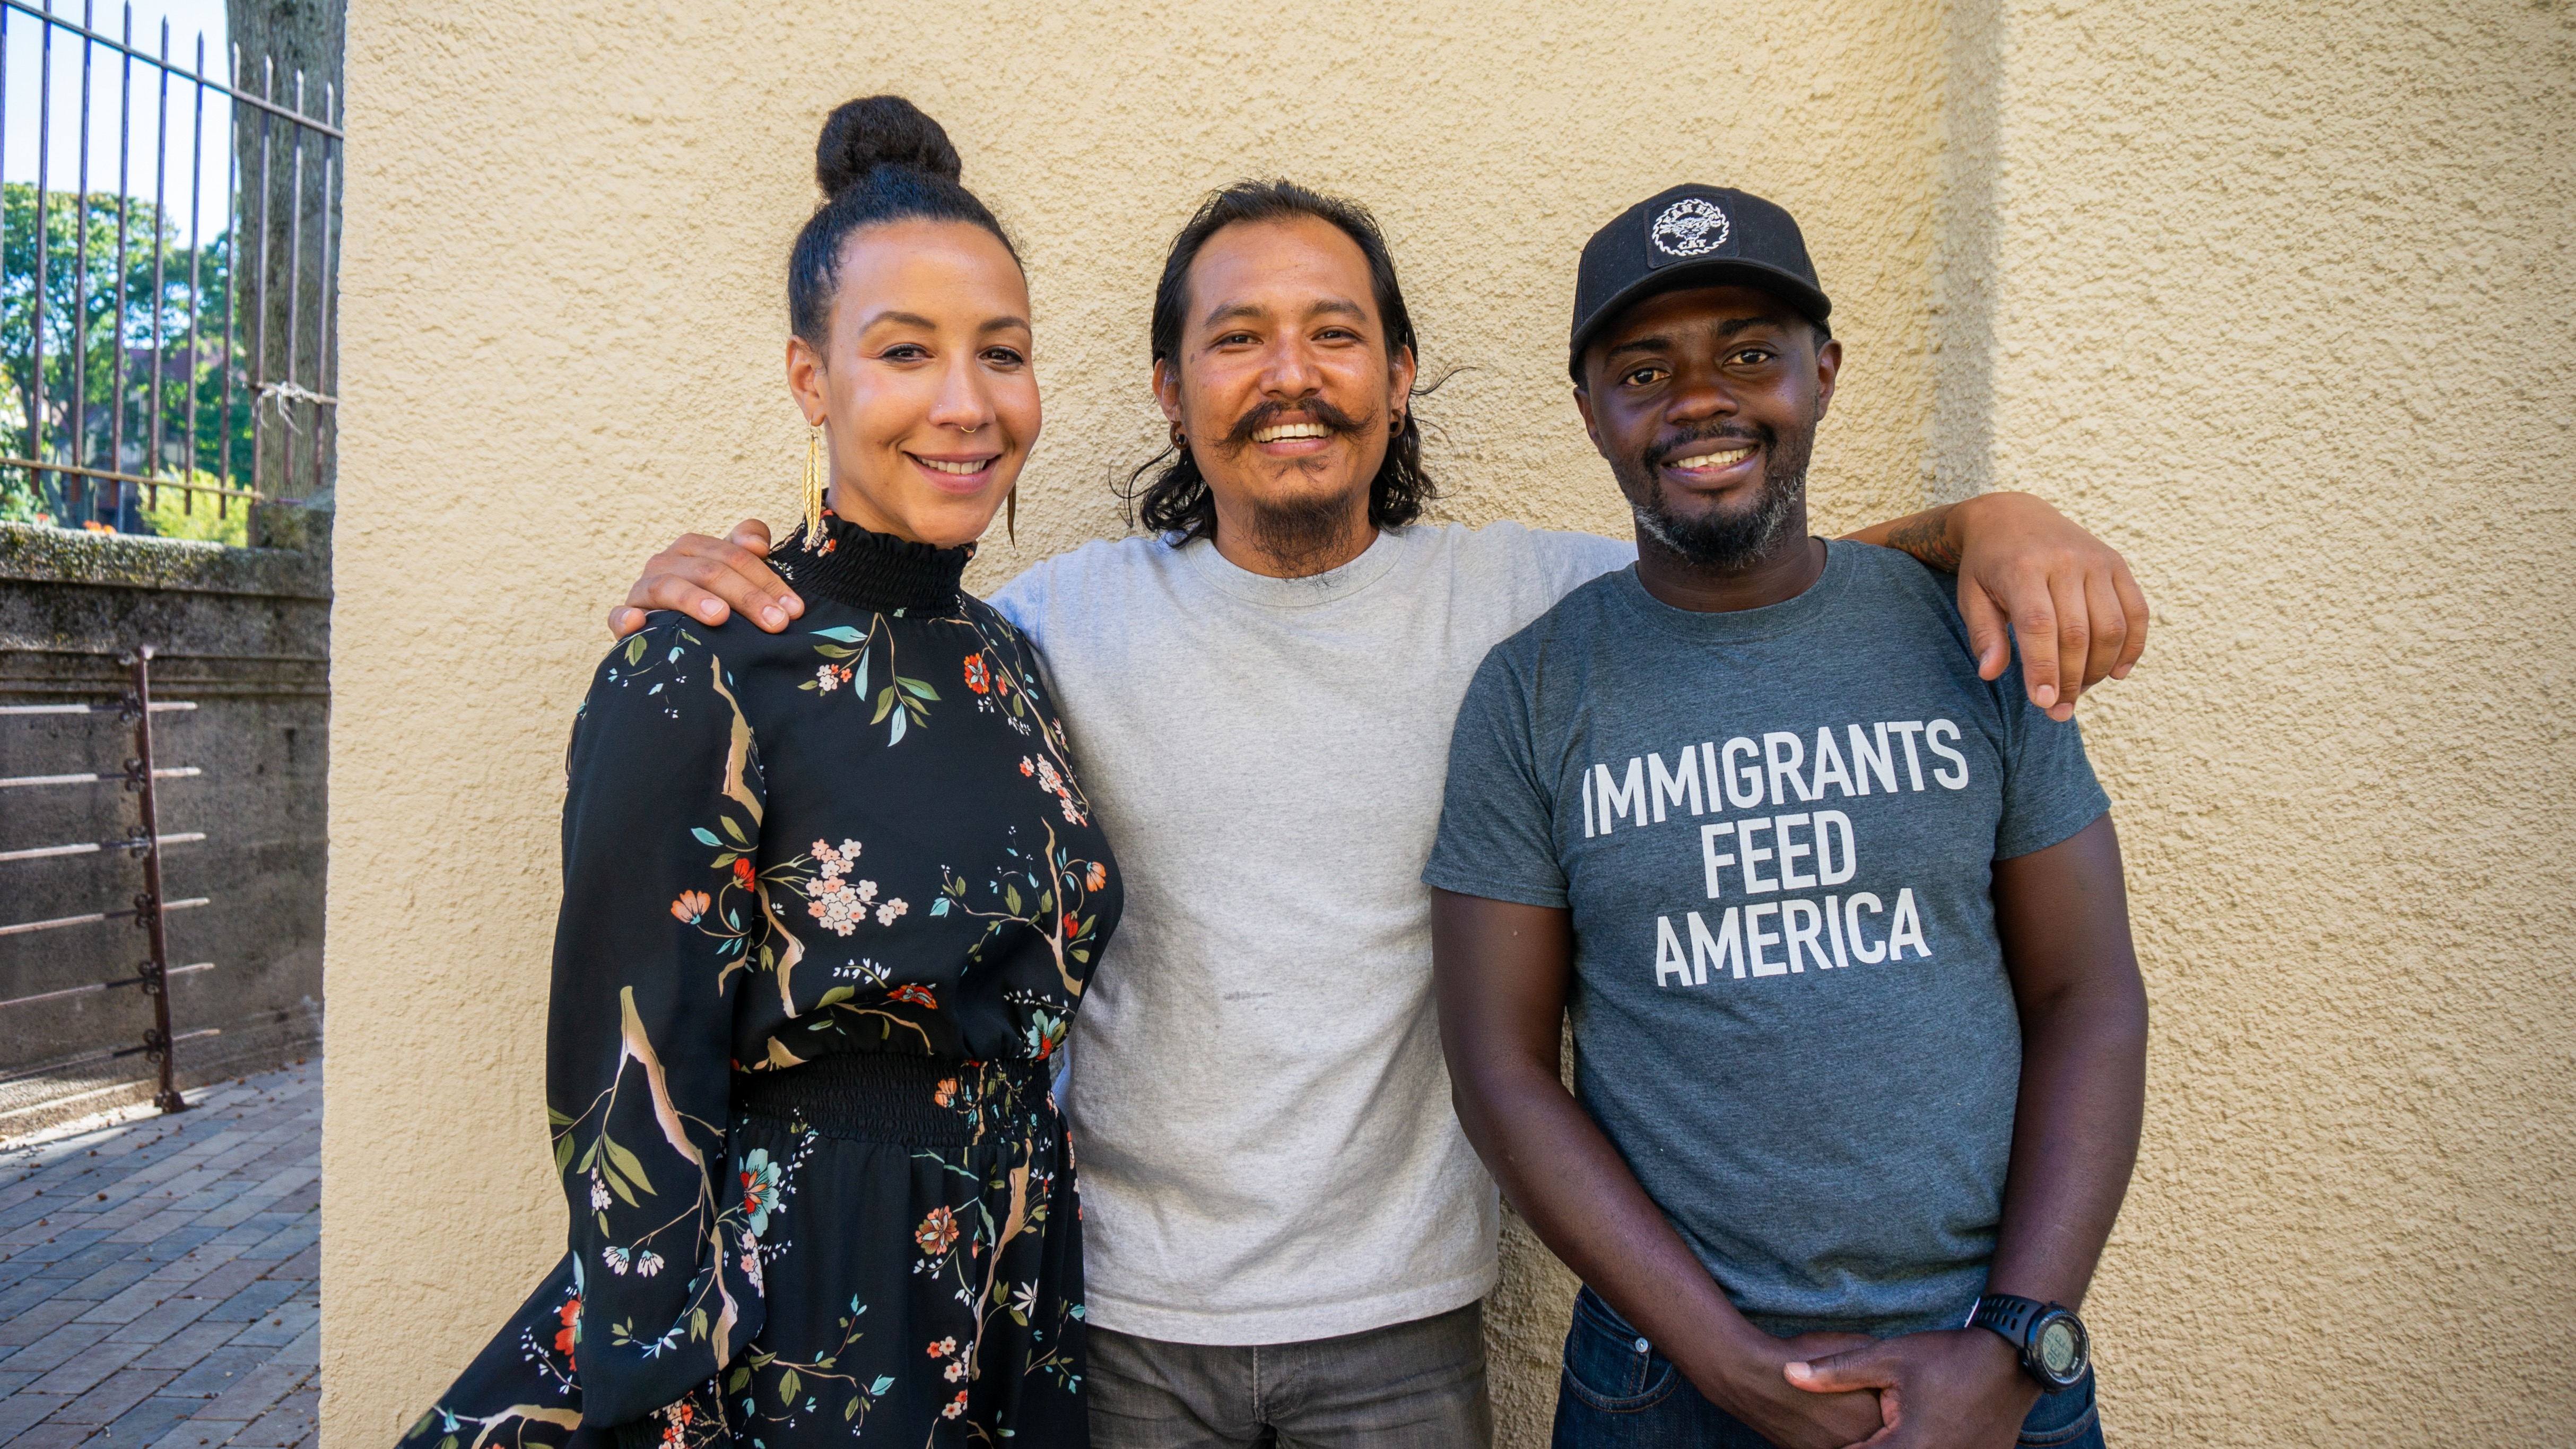 """A woman and two men stand in a line against a pale yellow cement wall outside, smiling and looking at the camera. The man in the middle has an arm around the shoulder of each person to the side. The woman on the left wears a black dress with a floral print, and the man on the right has a blue t-shirt that reads """"Immigrants feed America."""""""